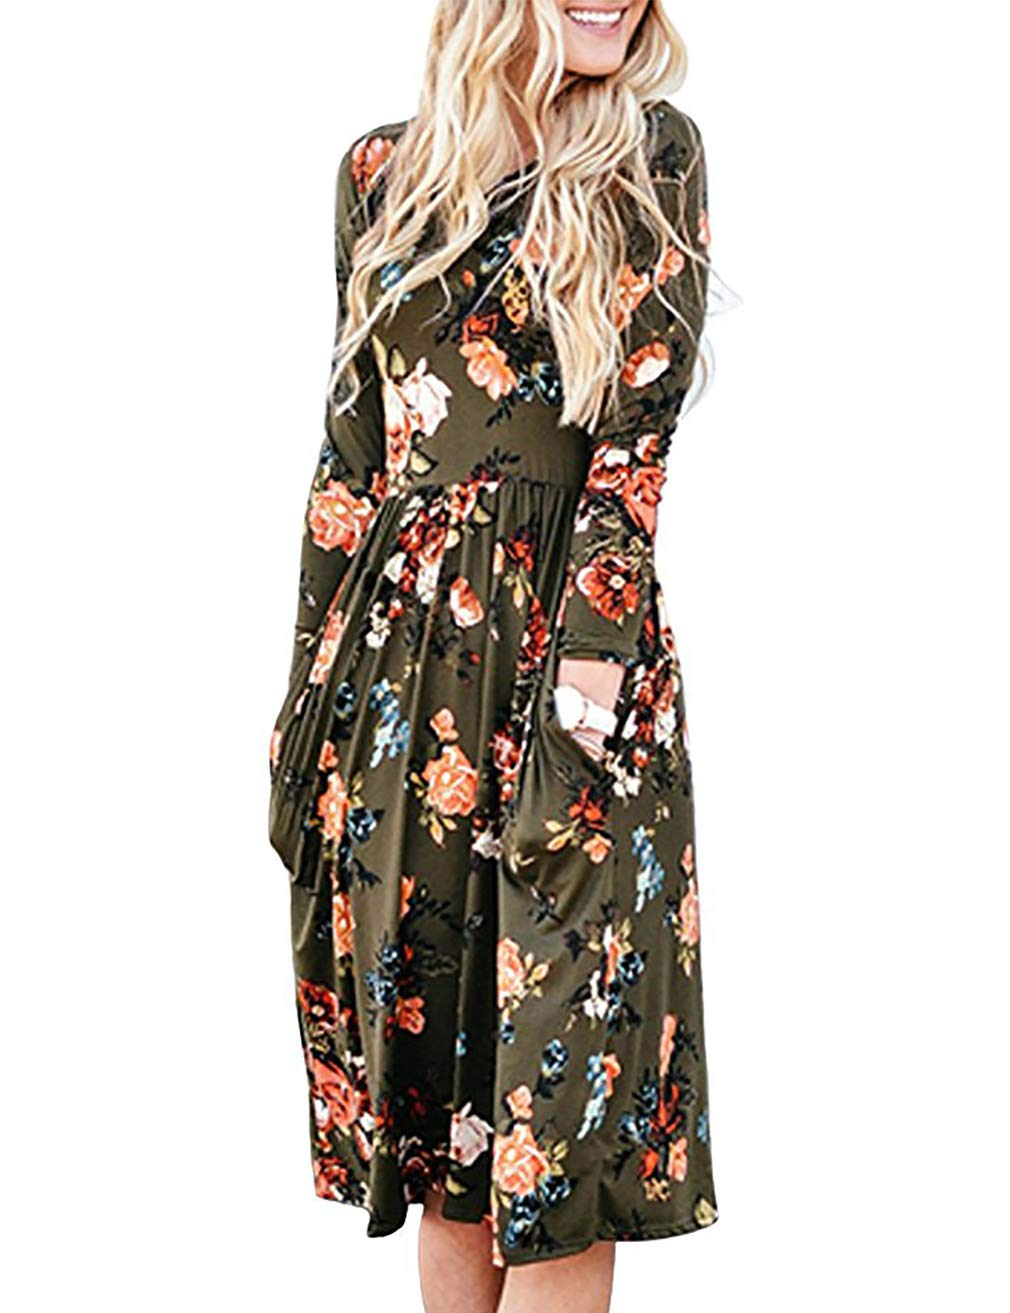 Tunic Dress,FINMYE Women's Knee Length Dresses with Sleeves and Pockets Green Floral XL